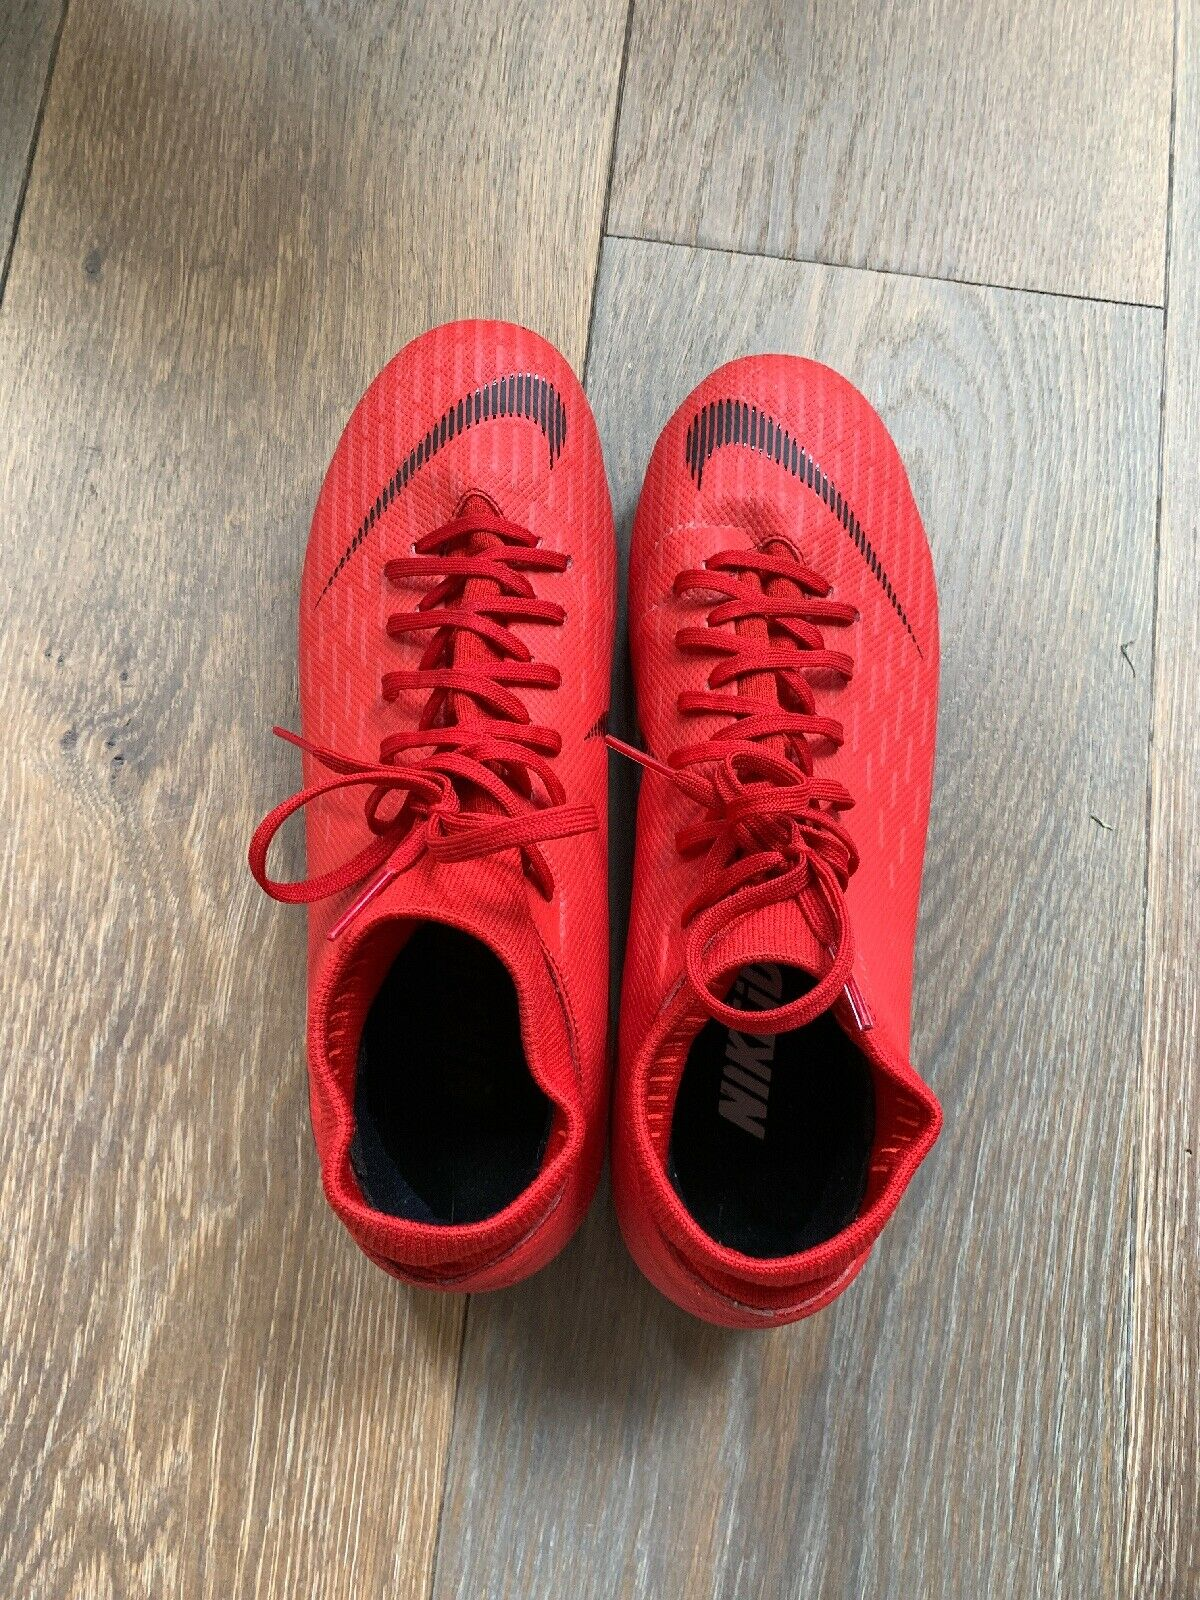 Mens 7.5 Dimensione Soccer Outdoor Cleats Used Once In Excellent Condition